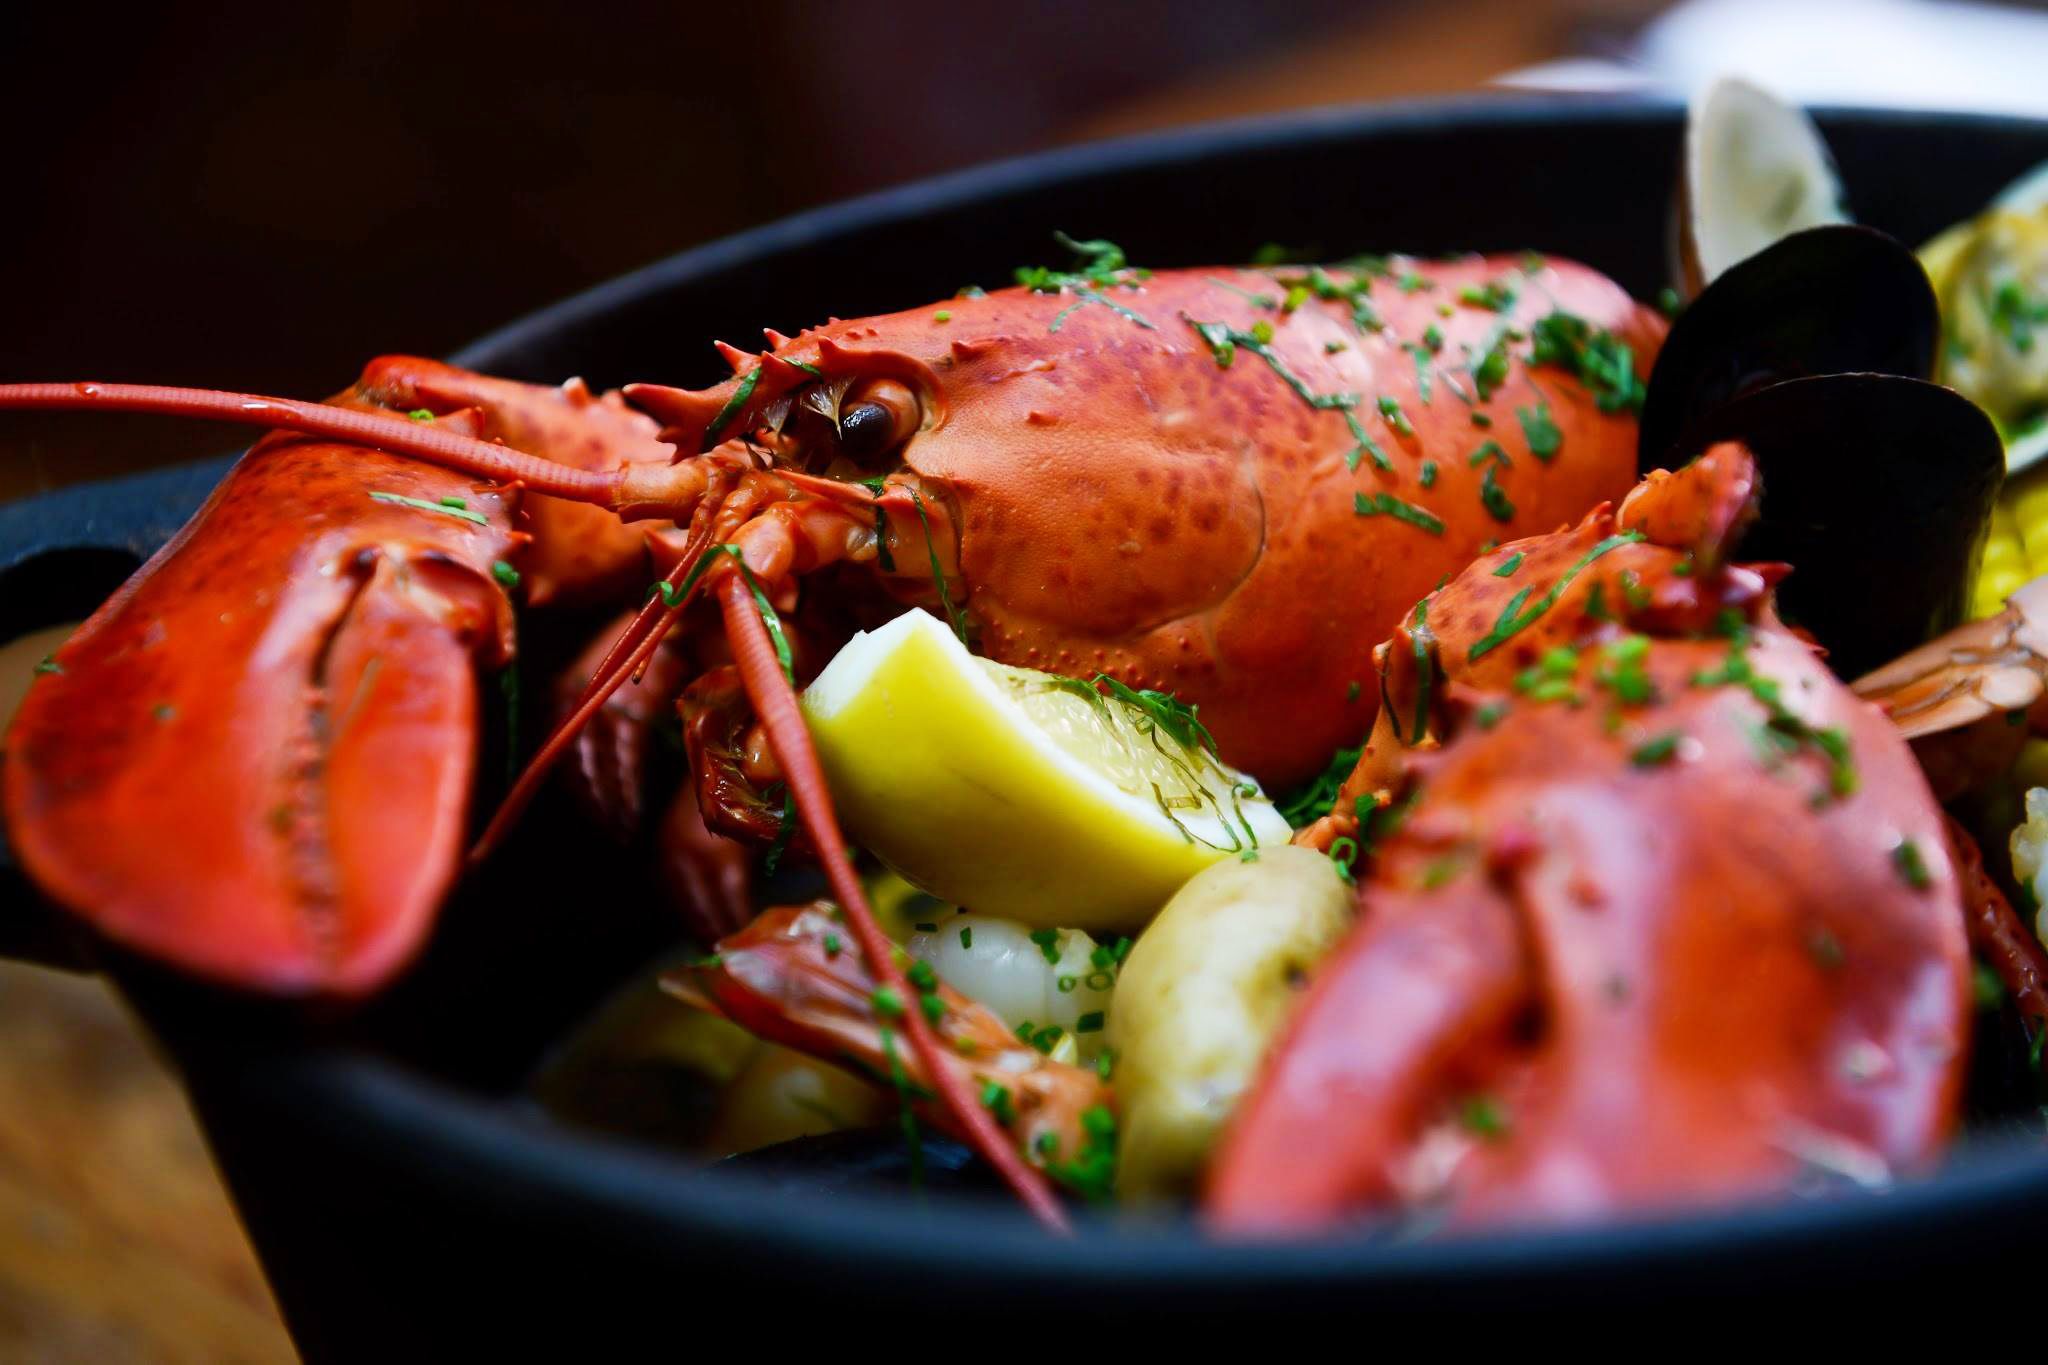 The Top Lobster Spots in New York - What Should We Do™